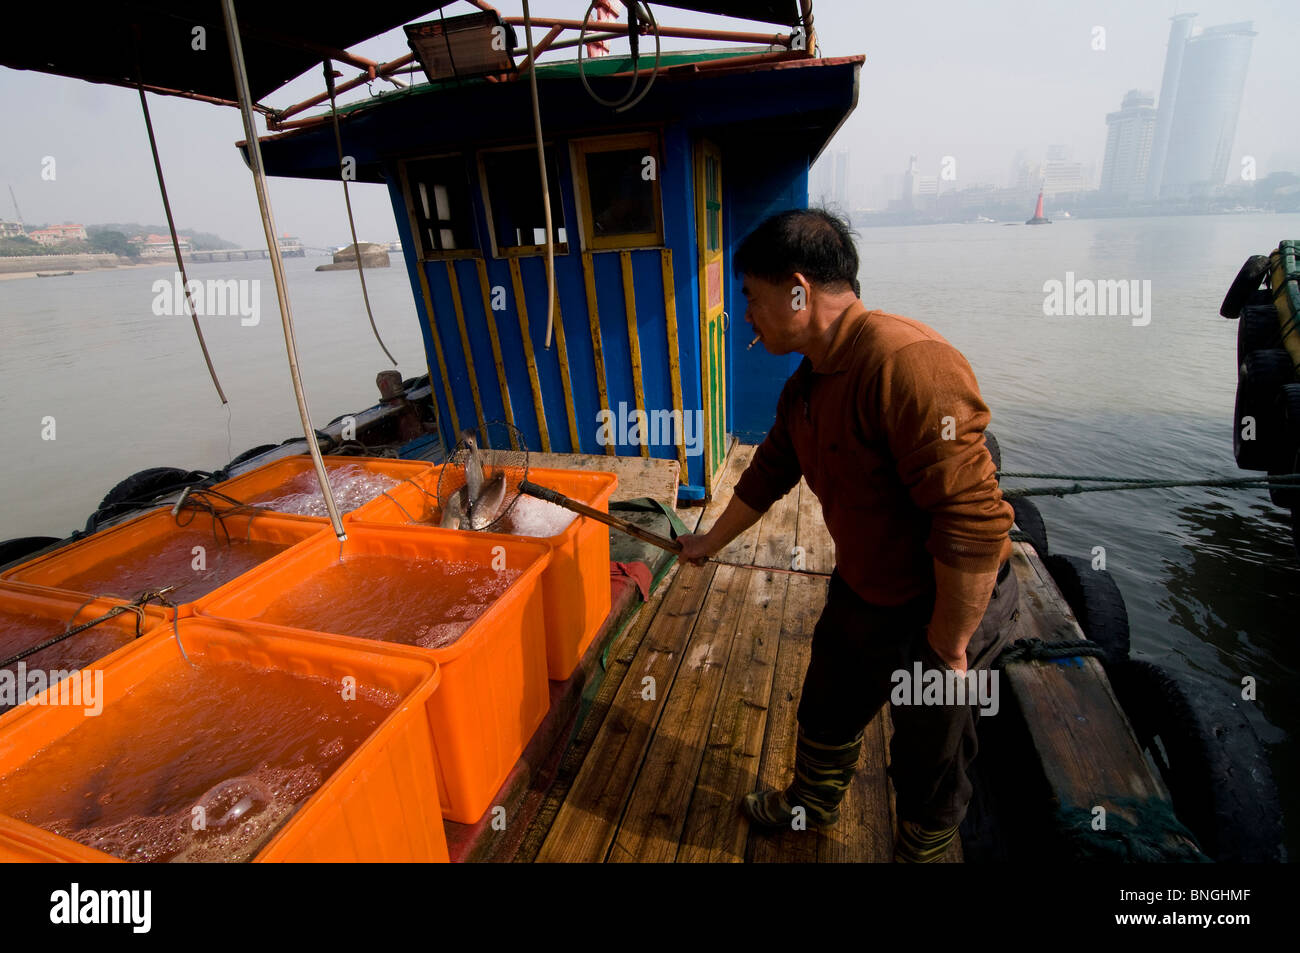 A fisherman on his boat in Xiamen, China - Stock Image